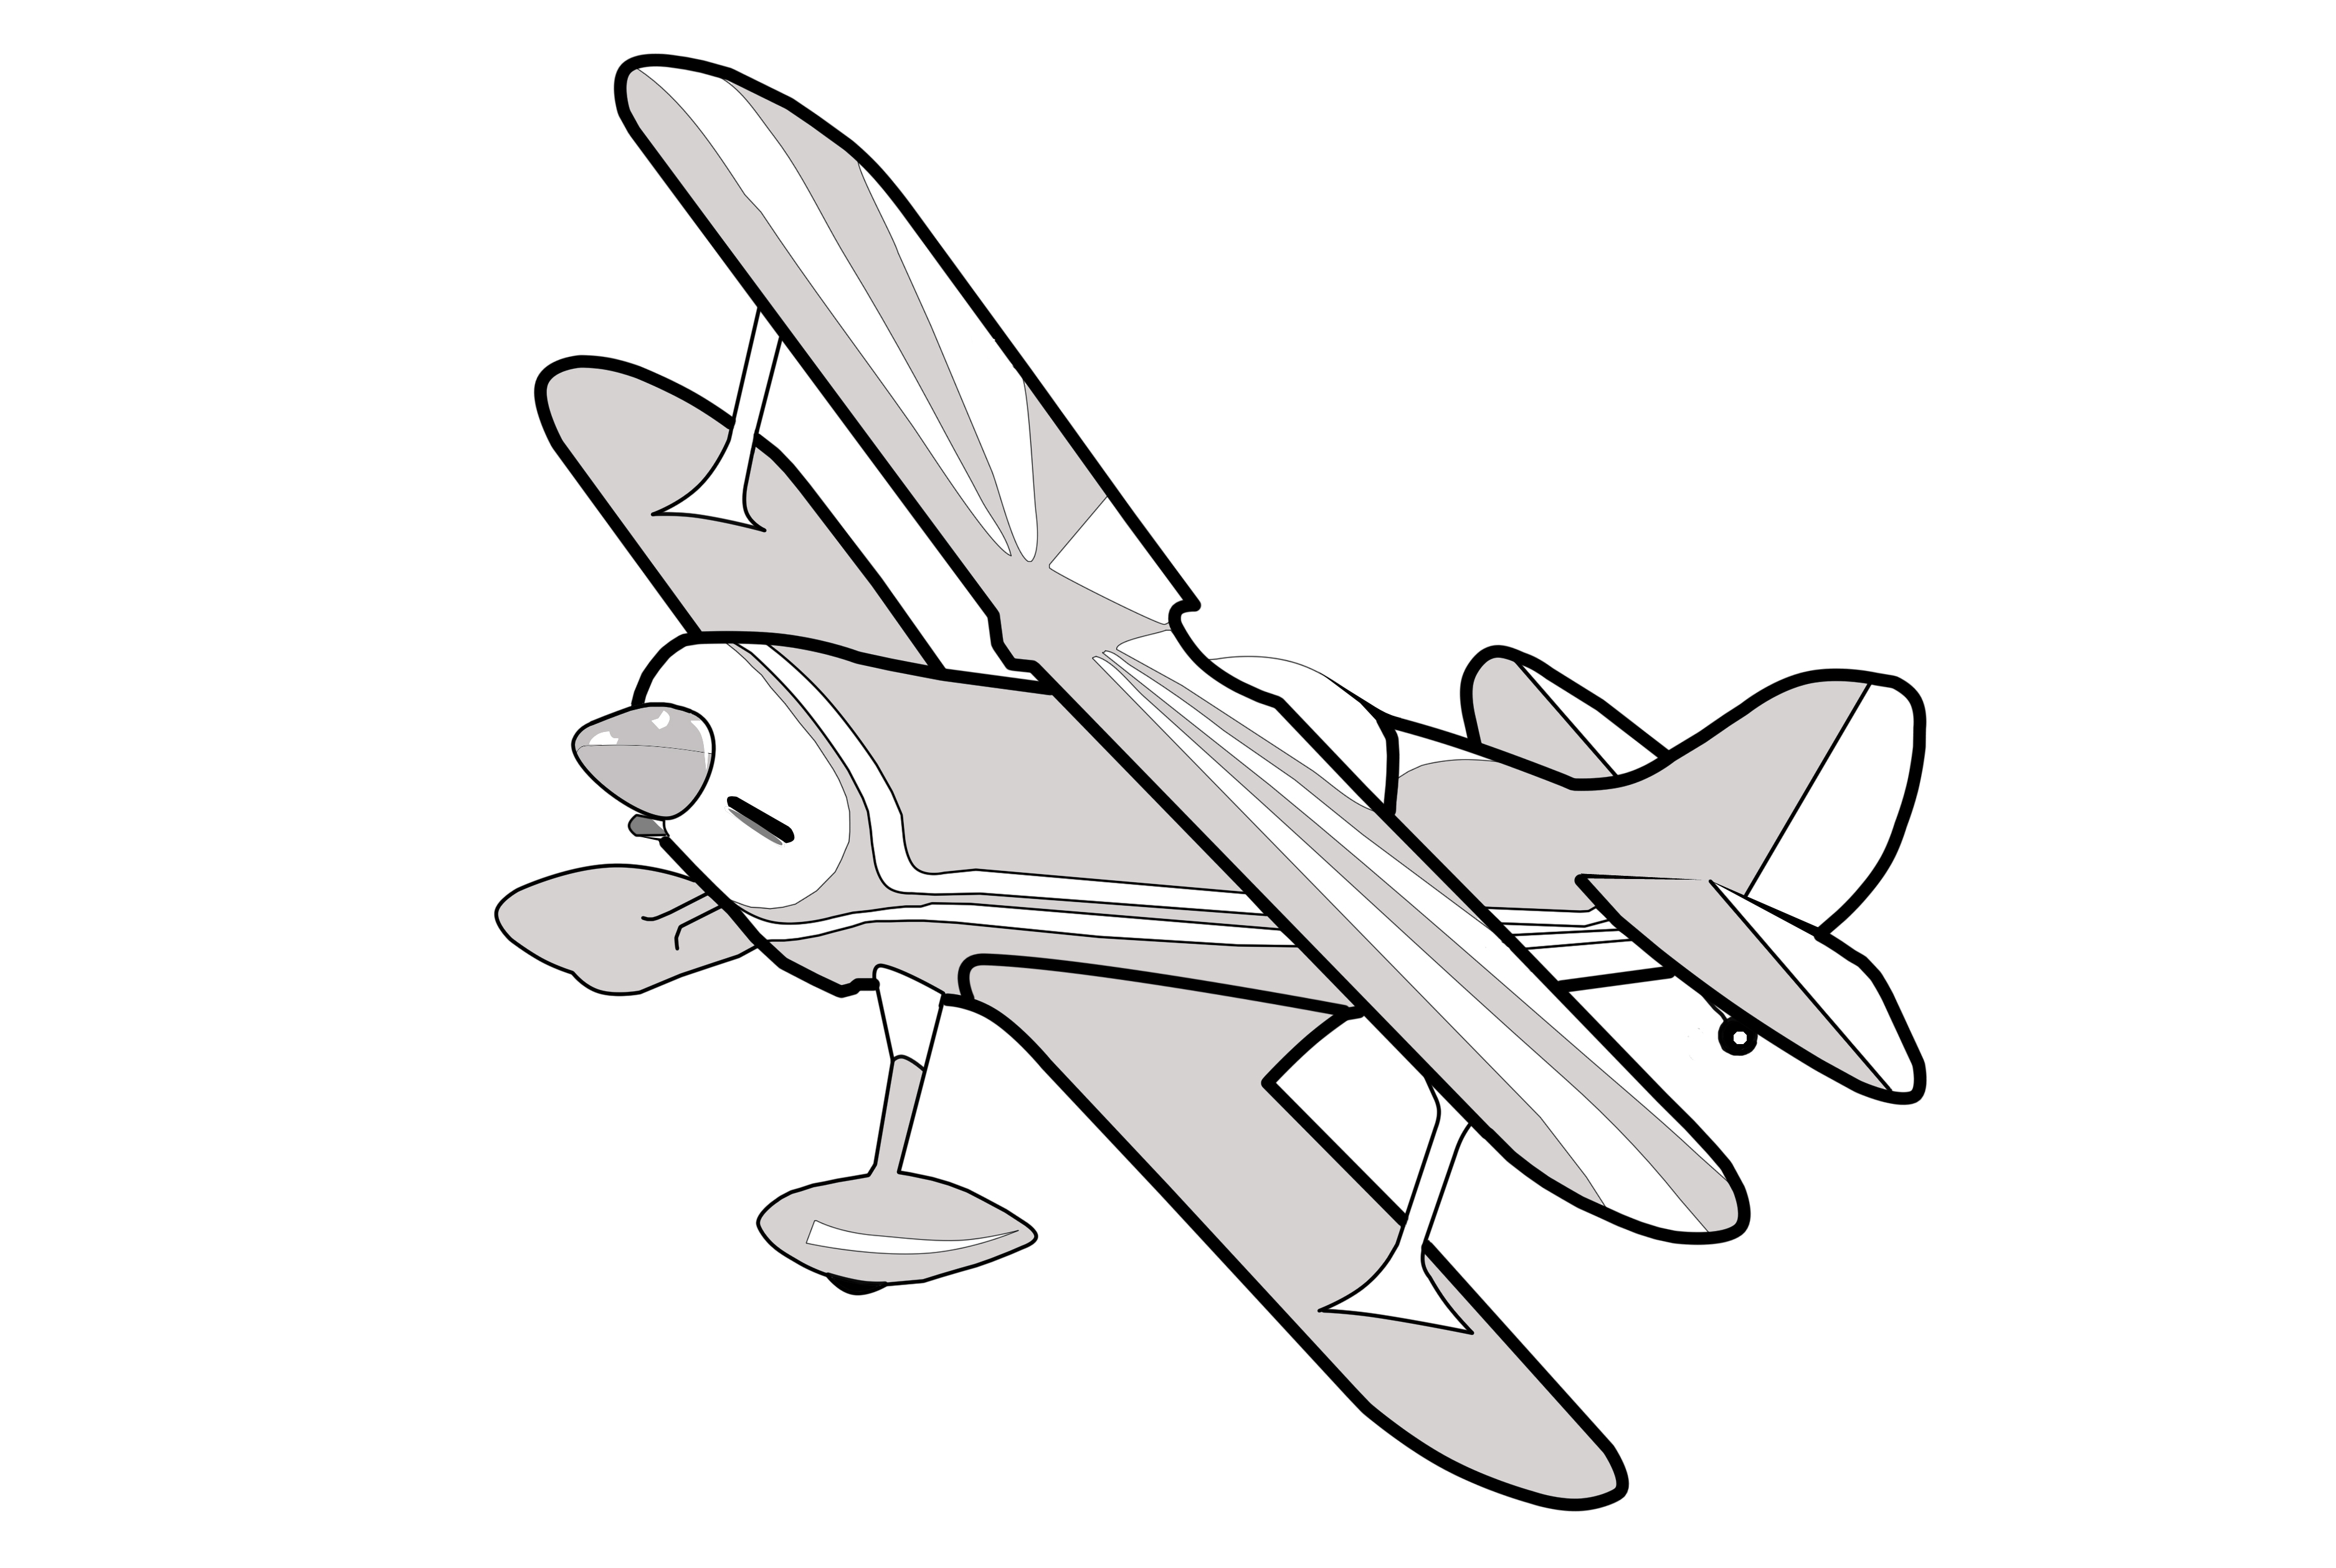 Grey Biplane Clipart Image - Biplane Clipart